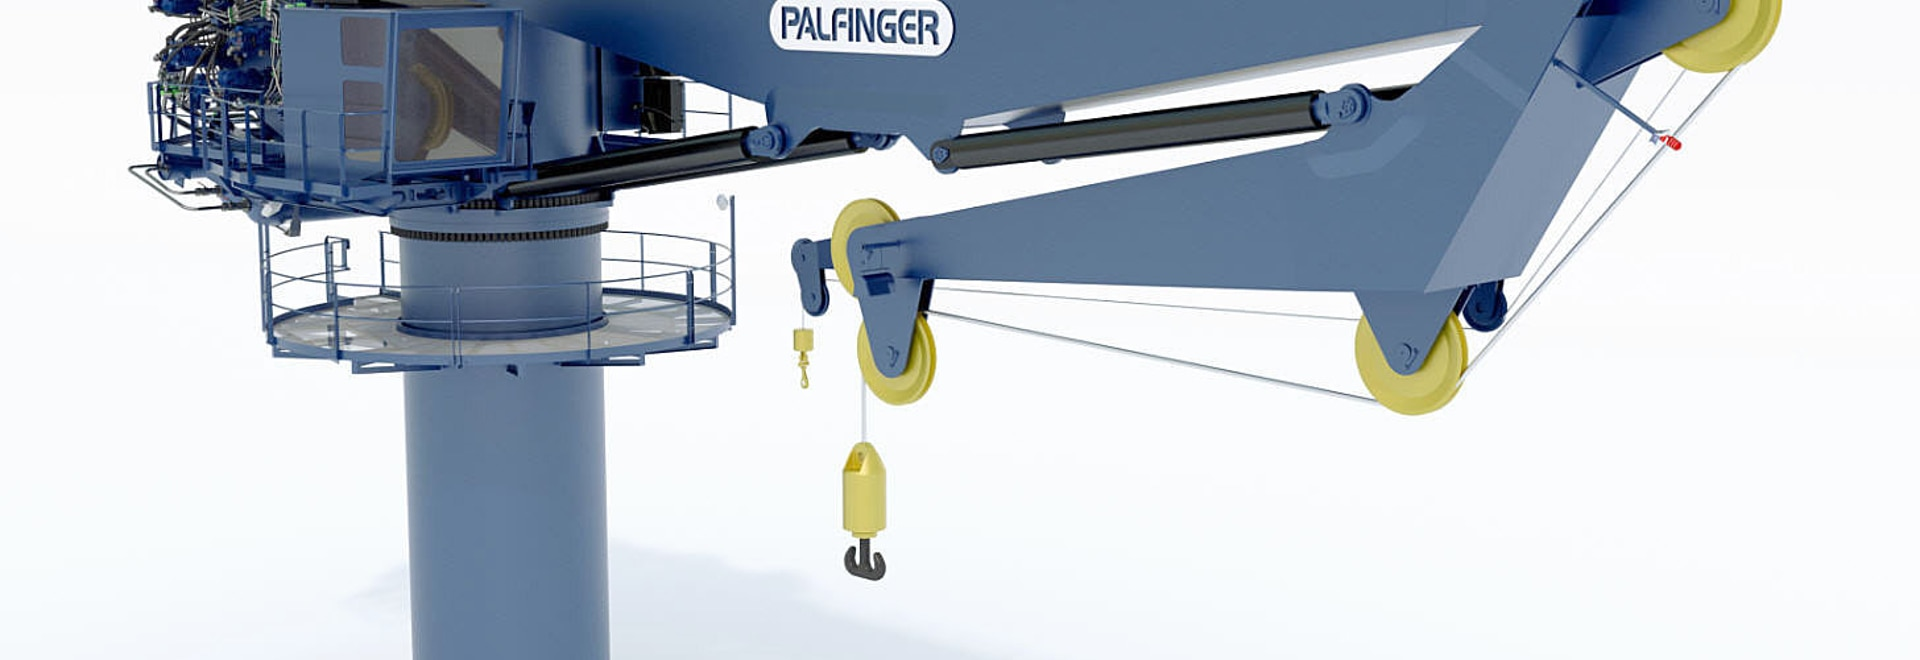 PALFINGER MARINE enters the market for Active Heave Compensated Subsea Cranes